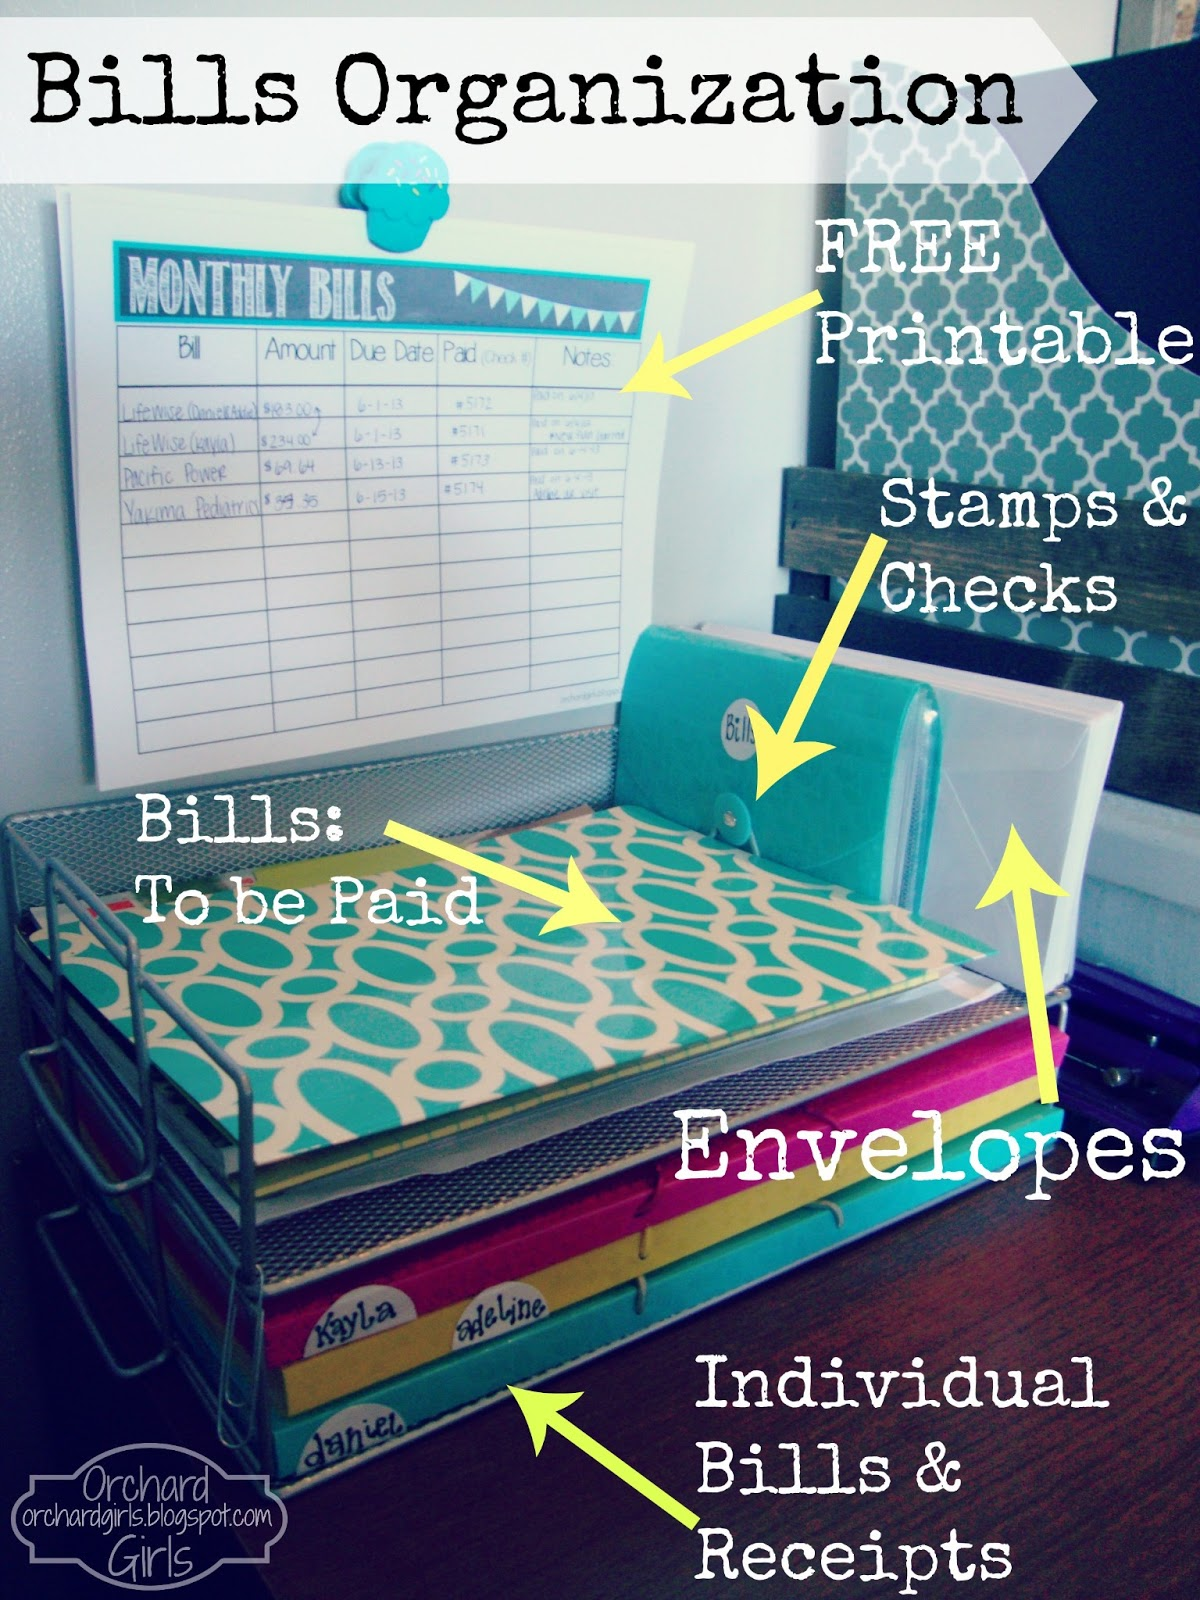 Orchard Girls Monthly Bills Organization Station Free Printable